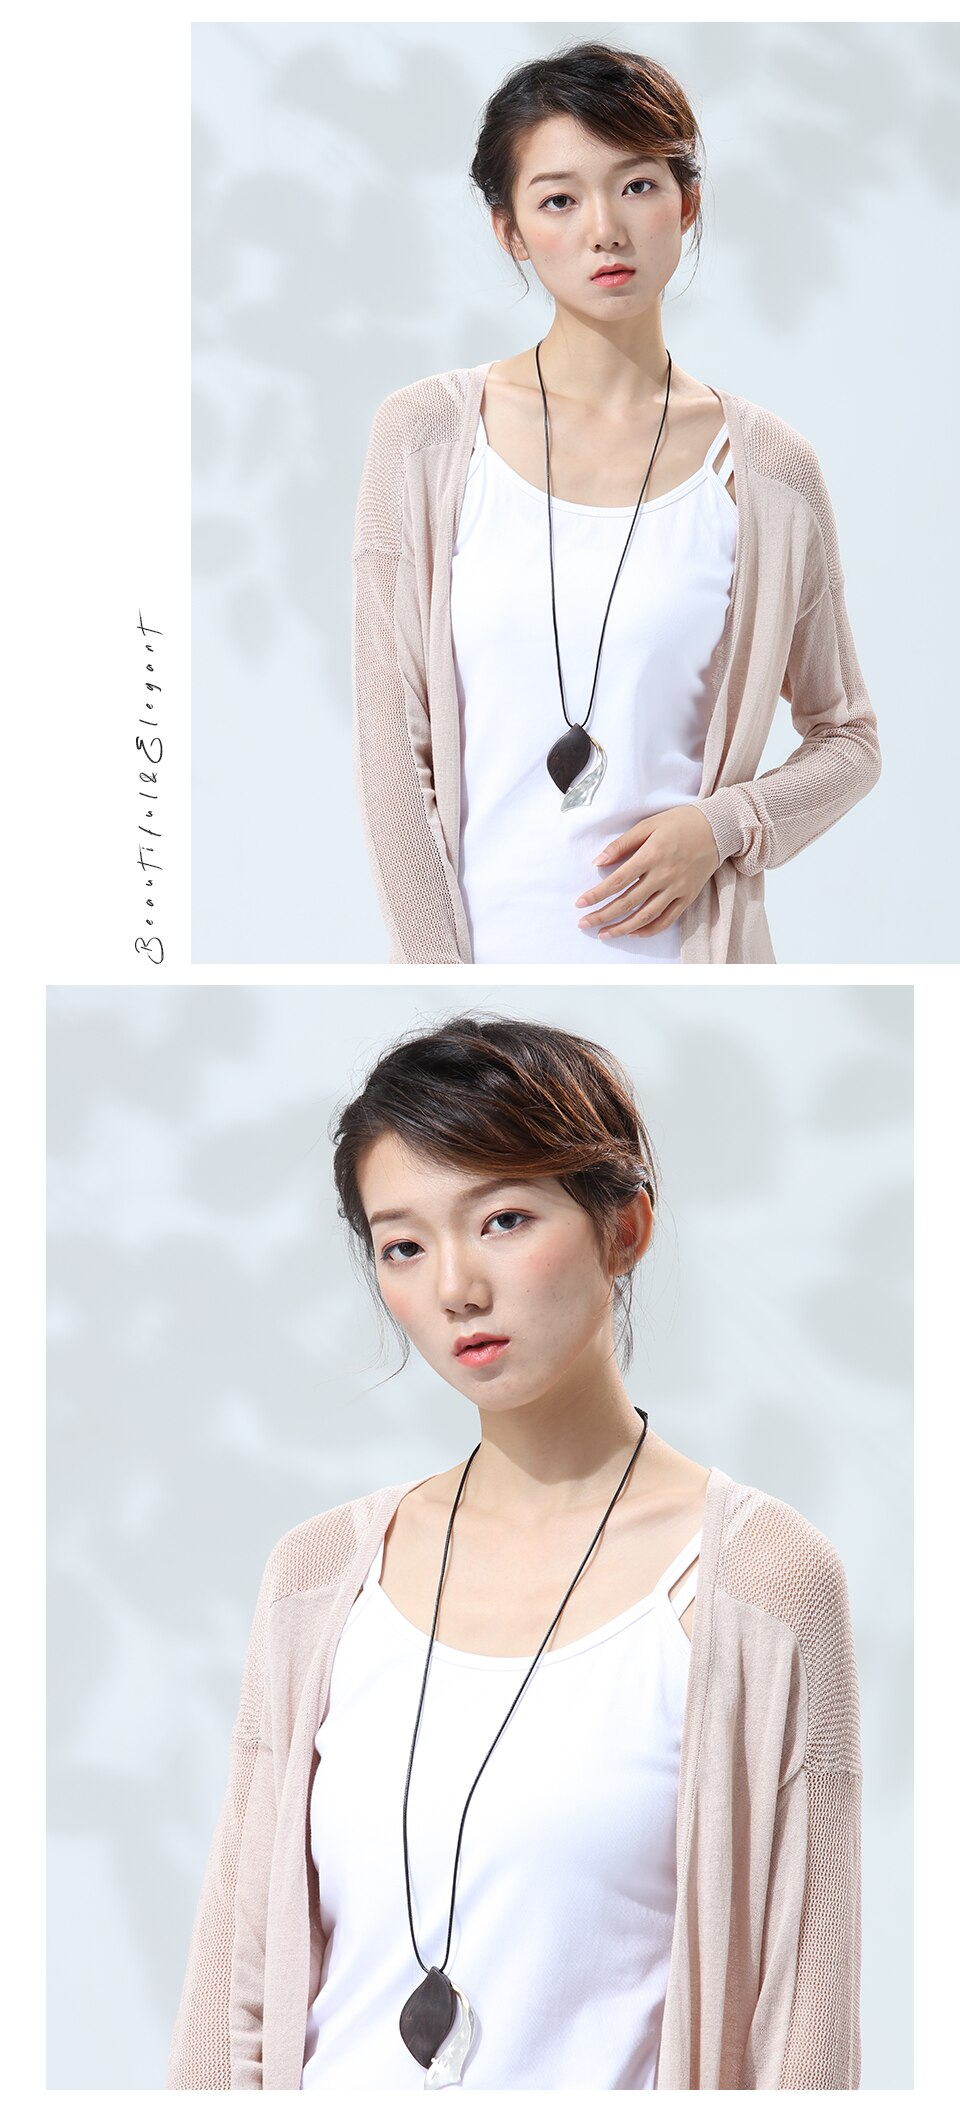 Women Pendant Necklaces New Fashion Vintage Sandalwood Sweater Chain for Wooden Handmade Jewelry Unique Big Pendant Female Gift